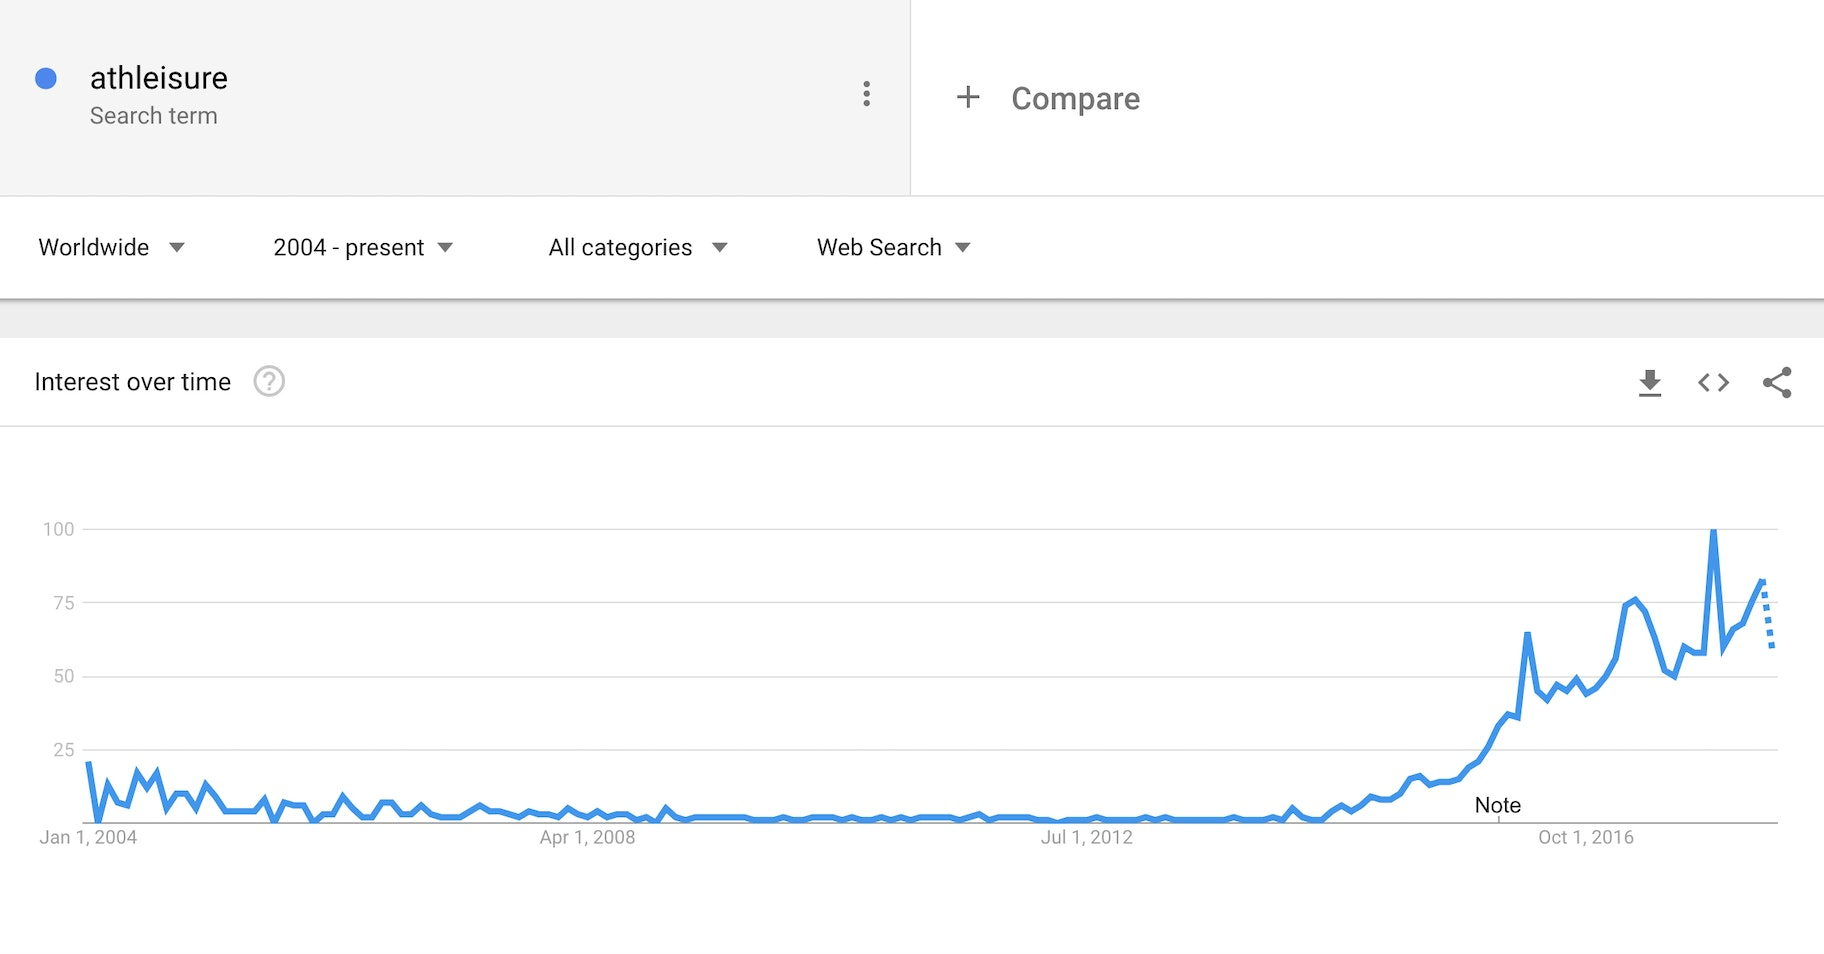 athleisure - google trends